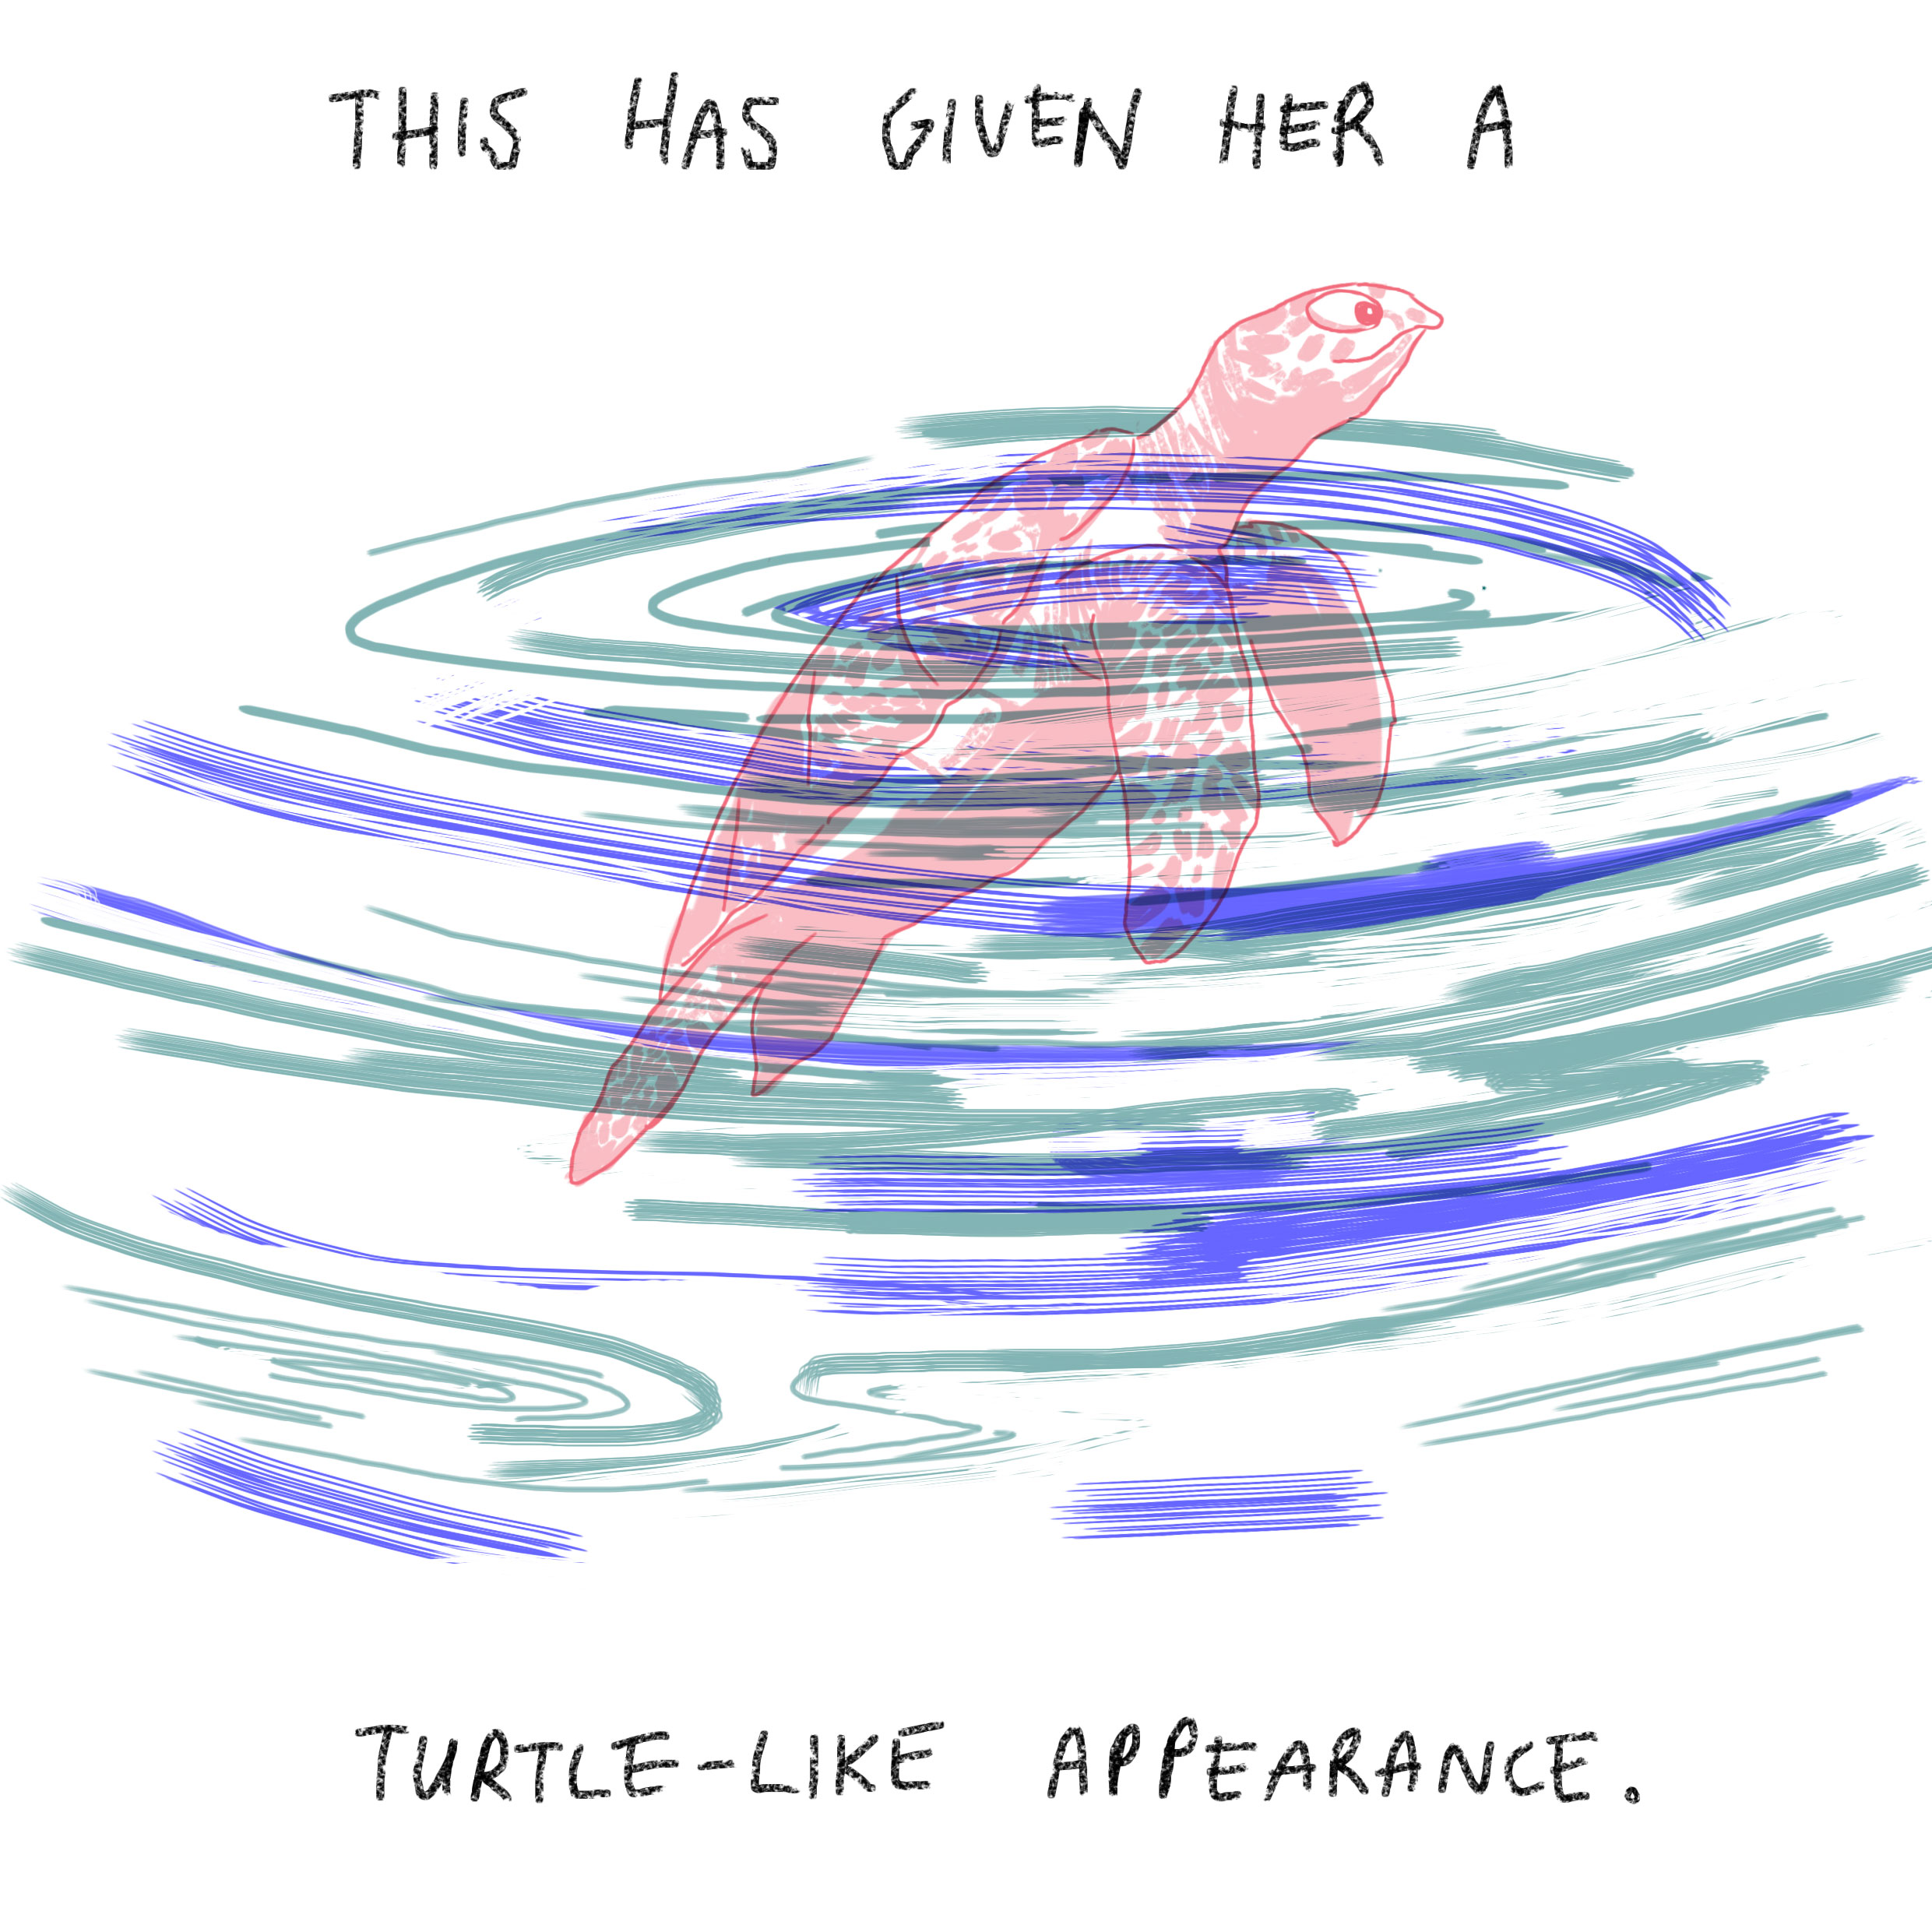 'This has given her a turtle-like appearance.'